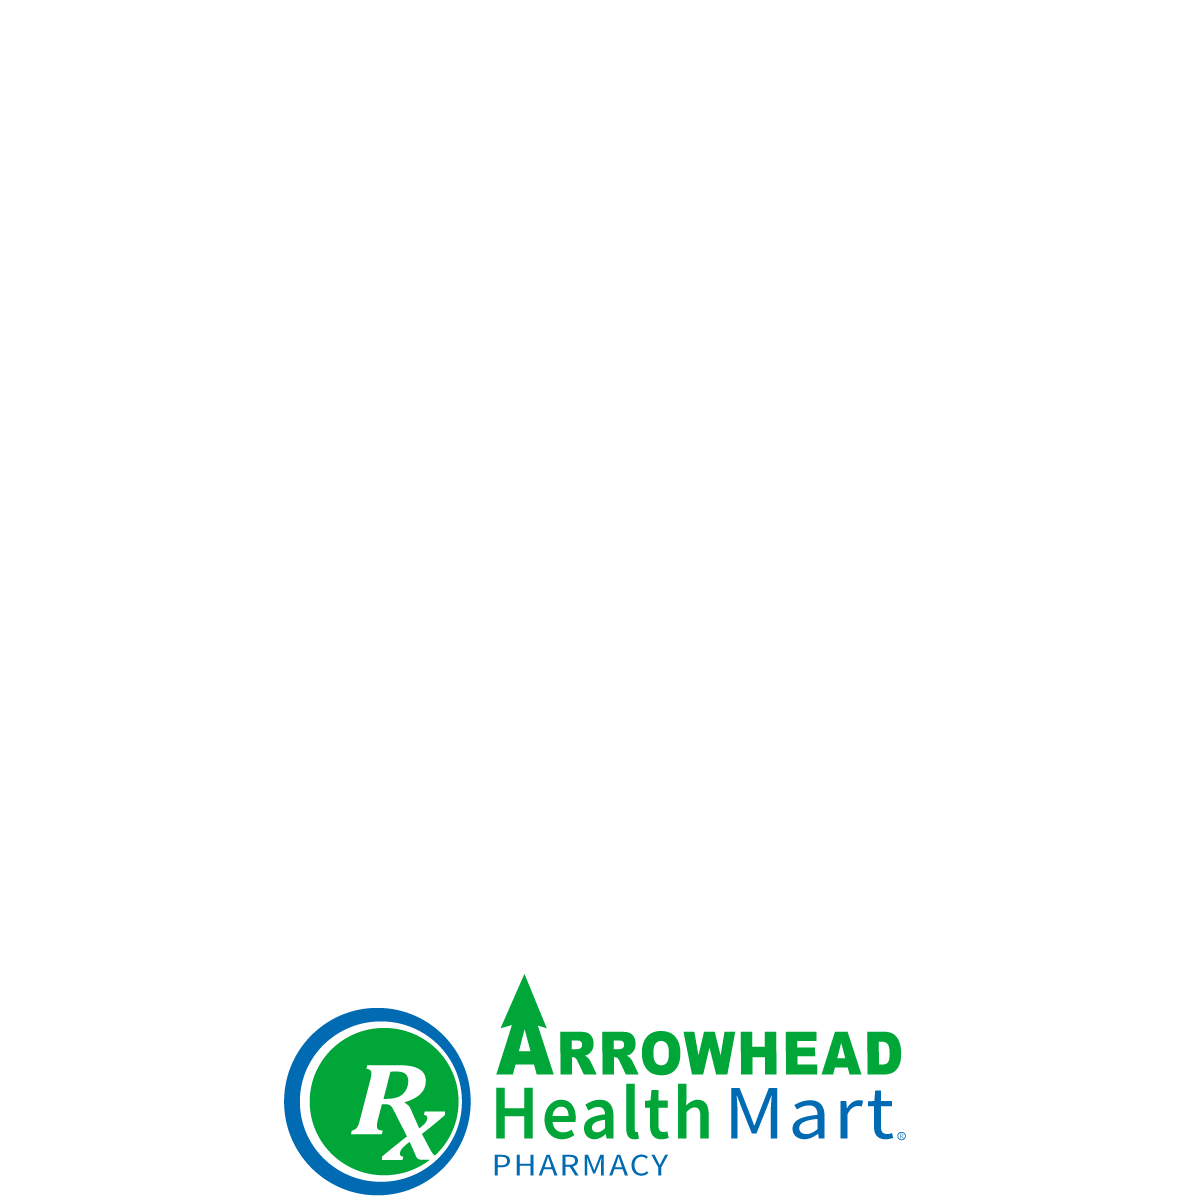 Arrowhead Healthmart Pharmacy